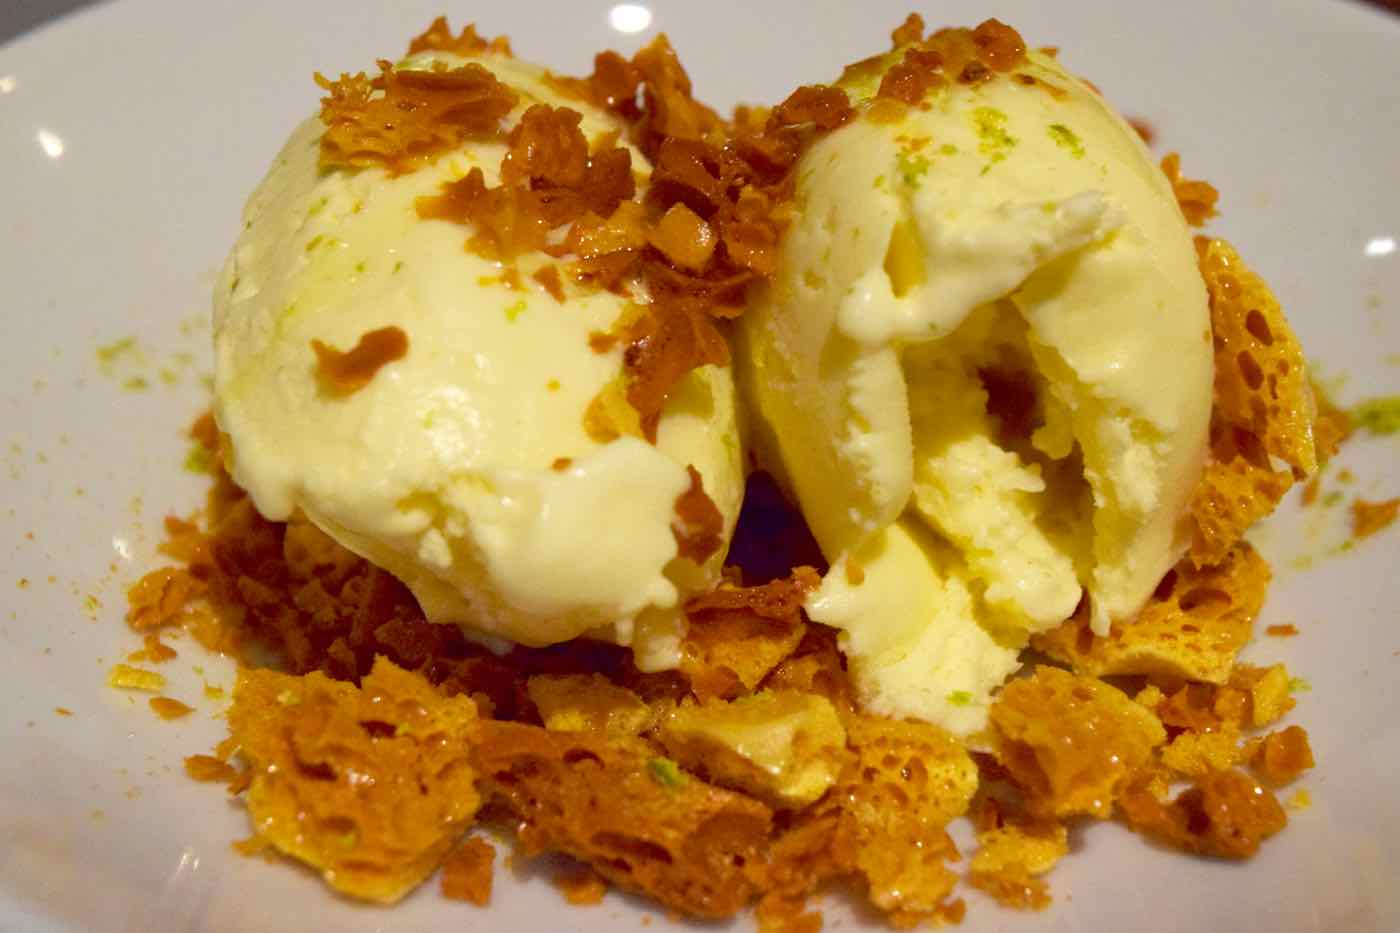 Olive oil and honey ice cream with honeycomb at Osteria London